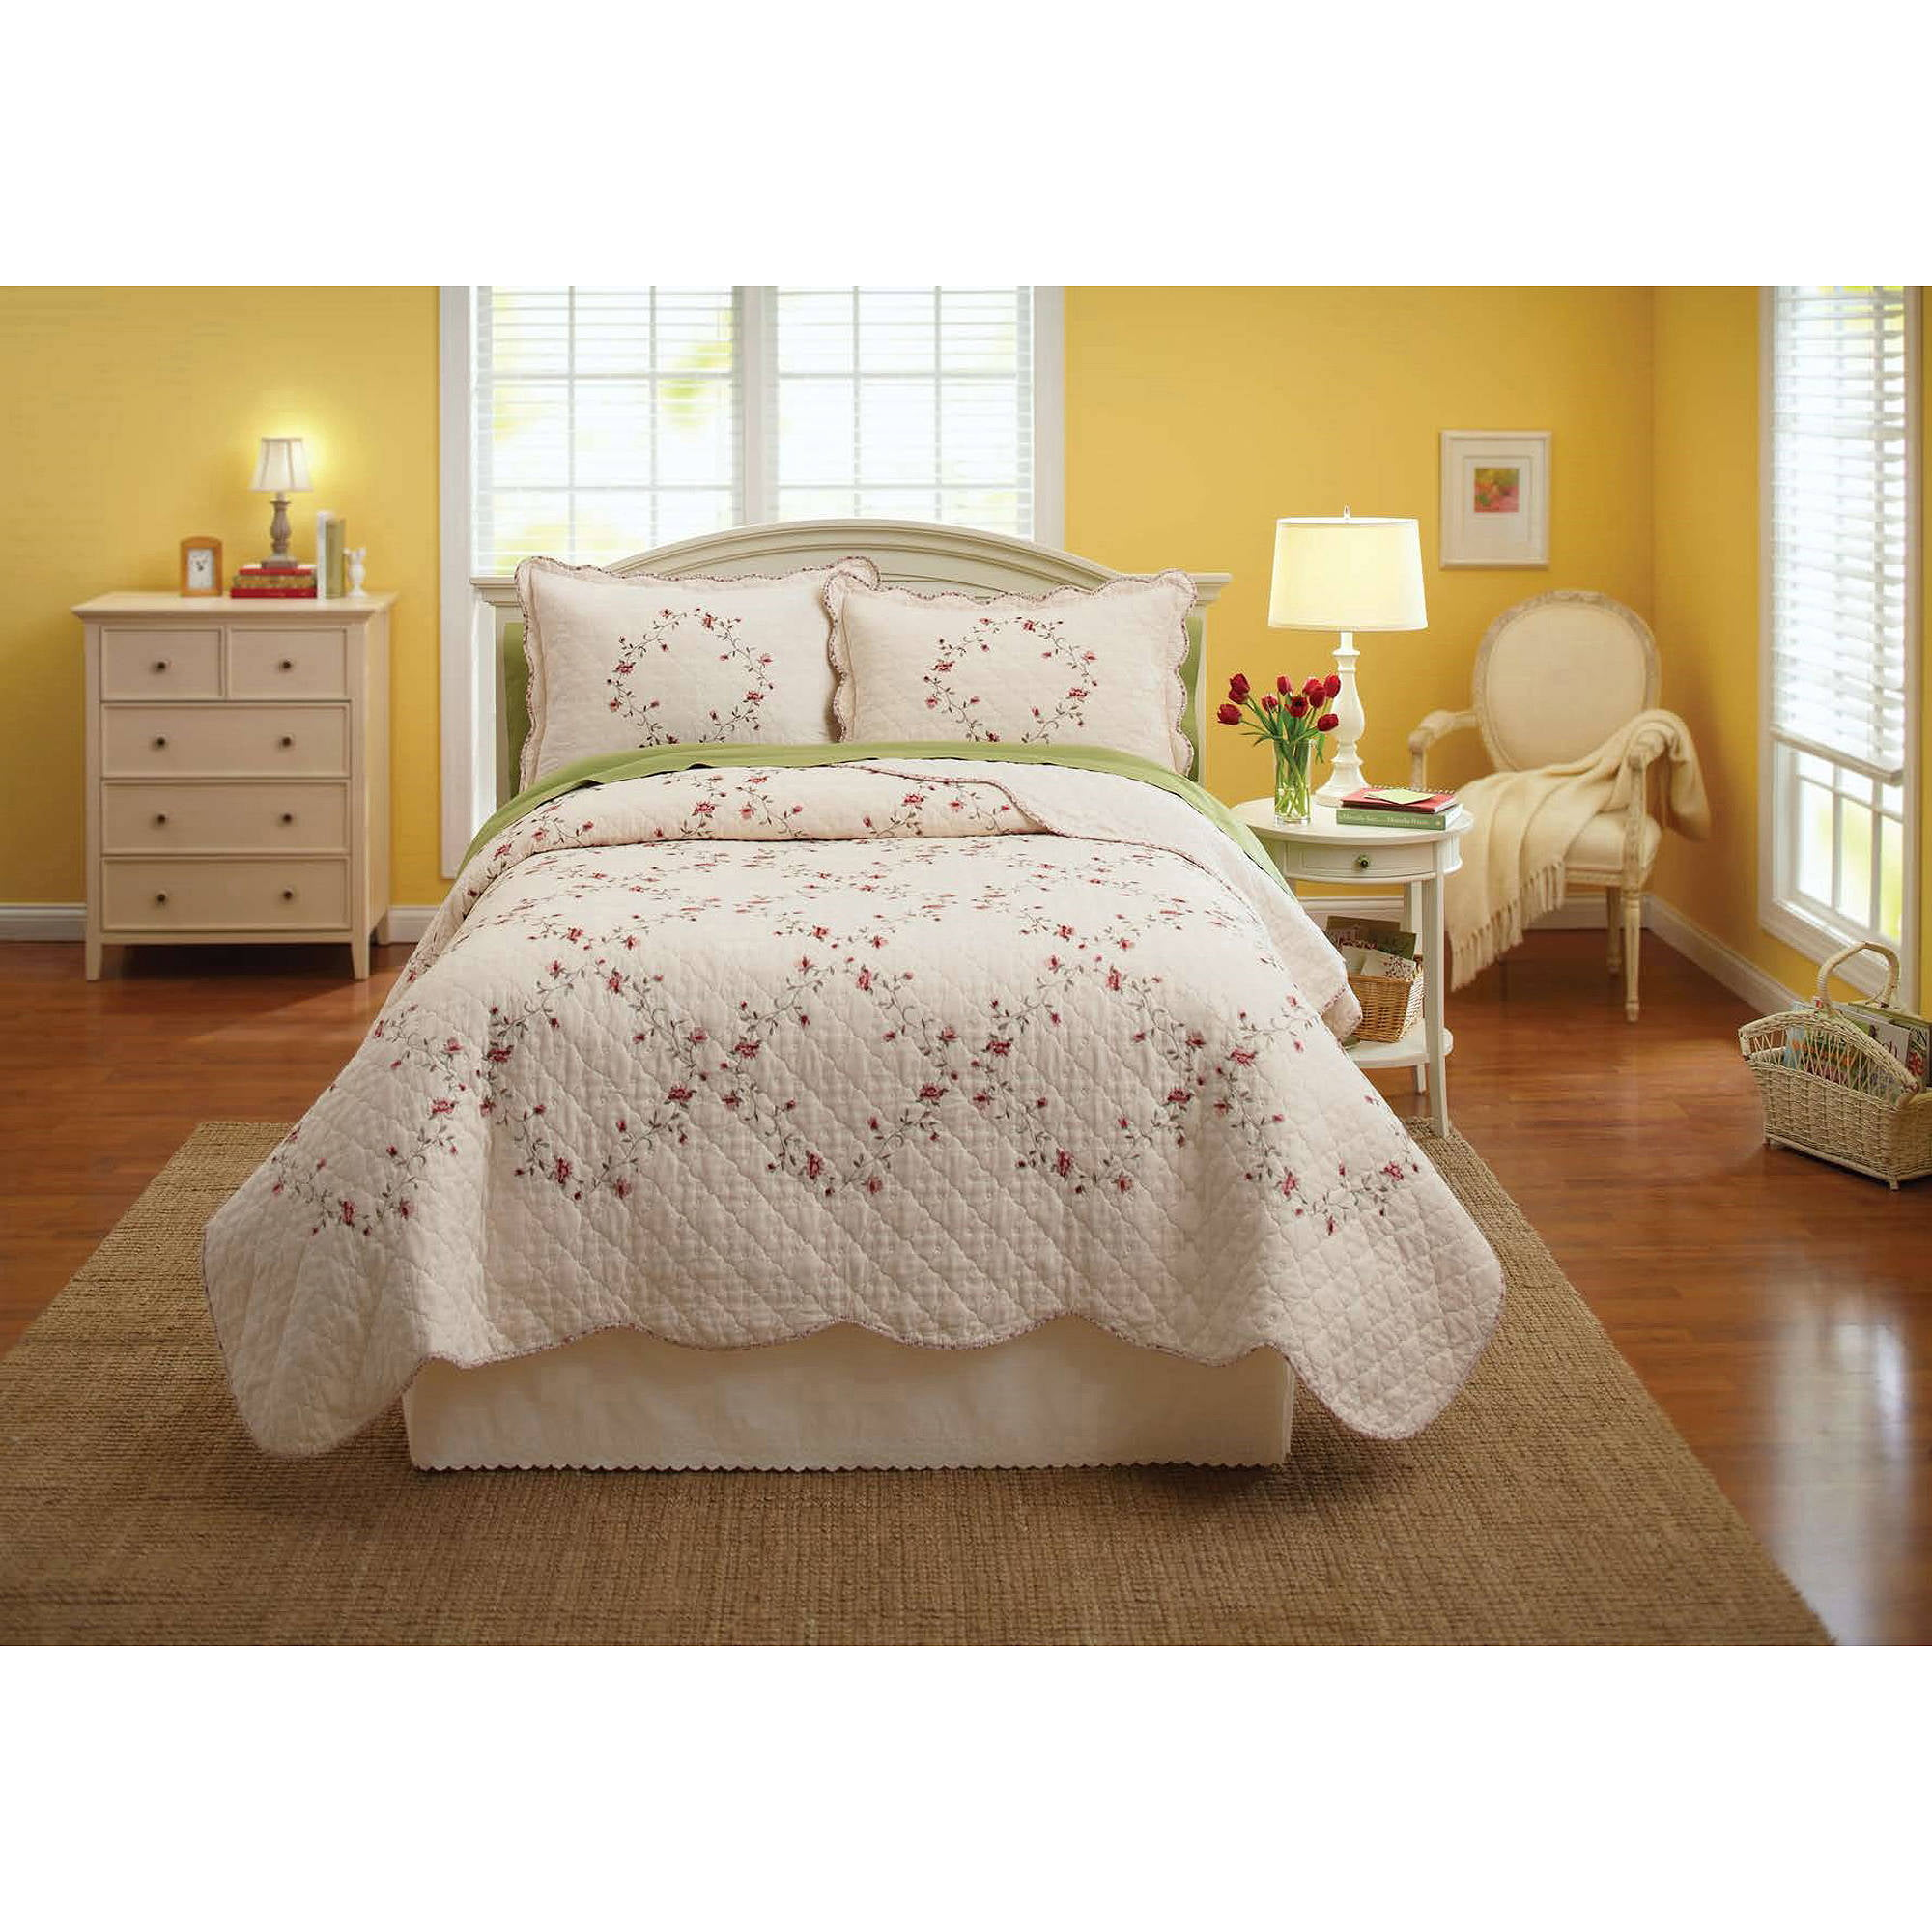 online comforters looking sets better taupe quilt bedroom suzani coastal and queen good awesome service collection shells homes hanna product aberdeen set garden ideas jeweled customer gardens bedding comforter damask inspirational blue prescott